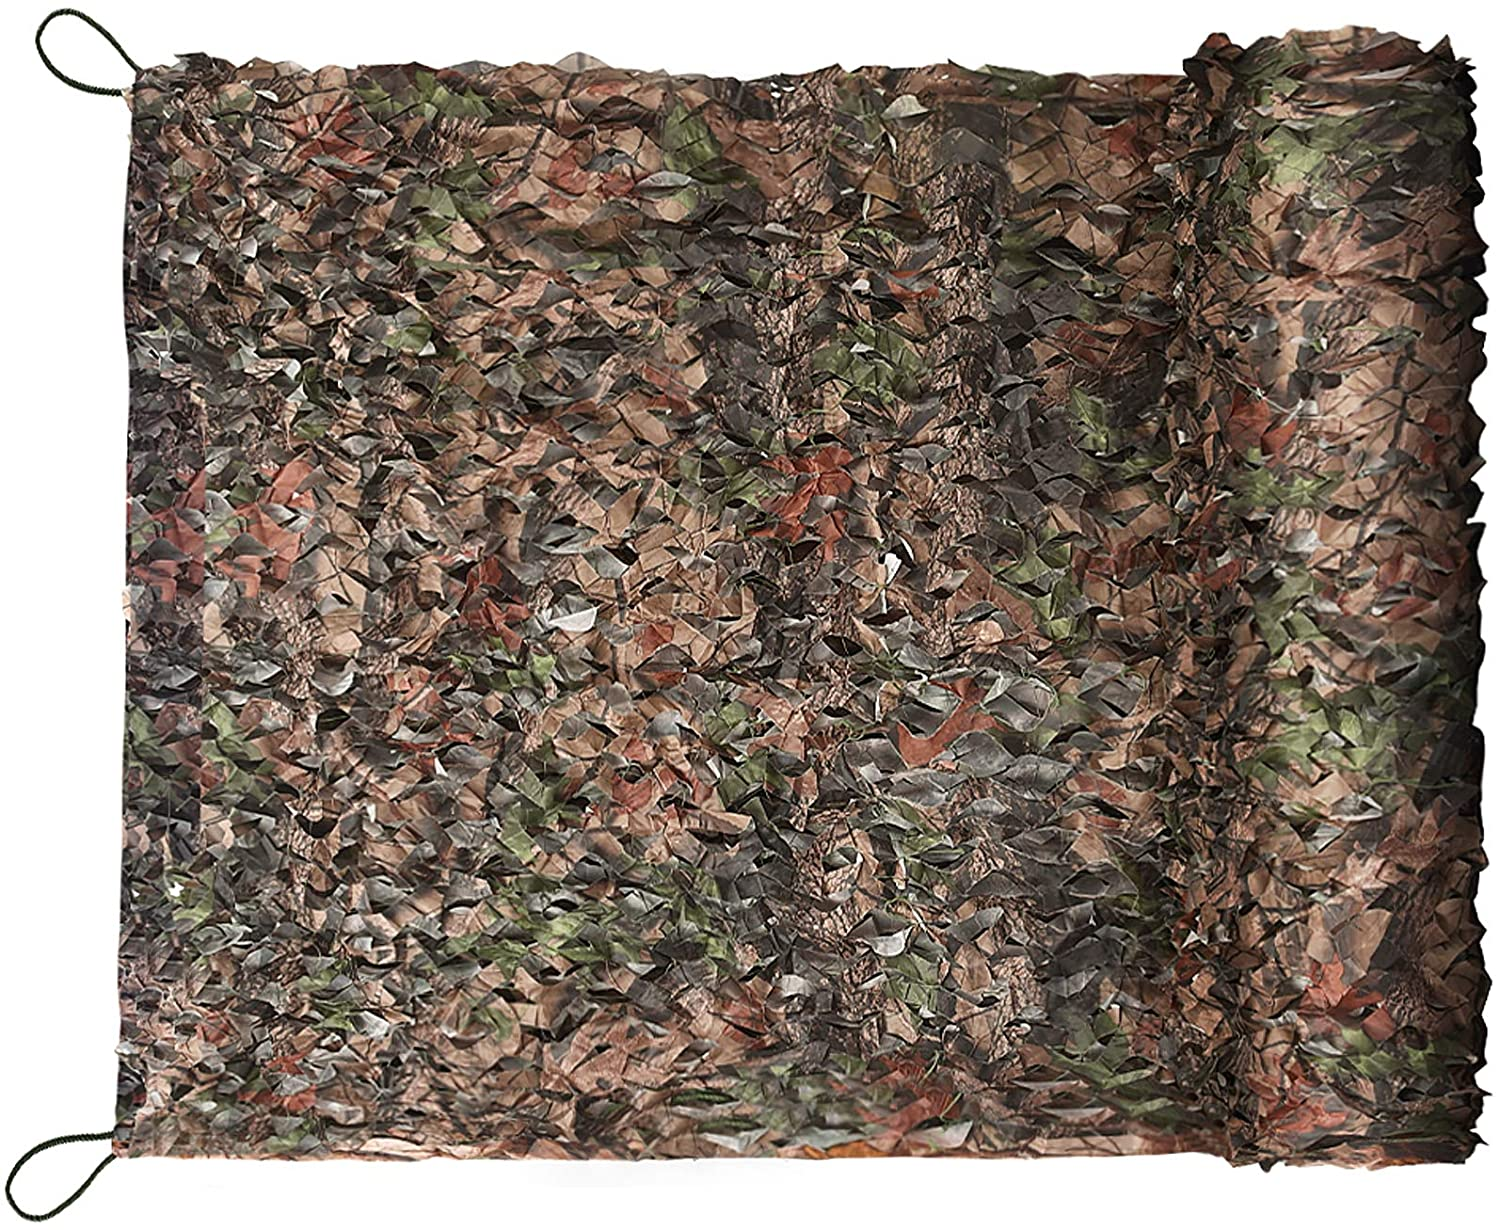 Yeacool Camo Hunting Blinds Netting, Military Canopy, Camouflage Tarp Rope Nets, Army Sunshade Fence Net, Lightweight Waterproof, Great for Car Cover, Party Decoration, Stealth Camping, Photograph